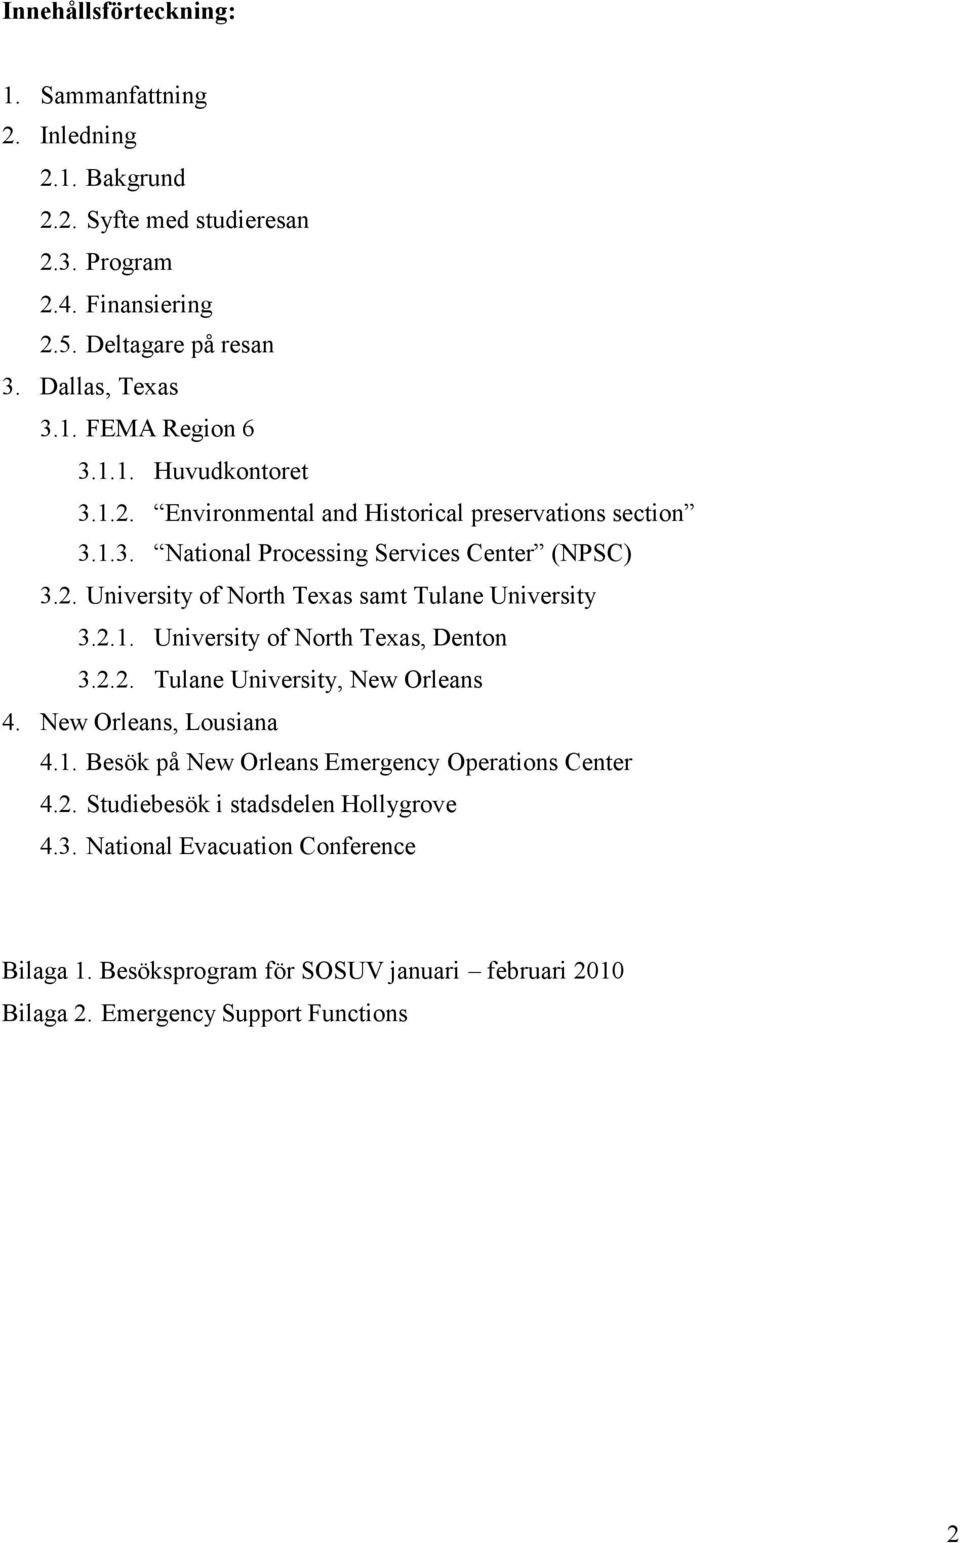 2.1. University of North Texas, Denton 3.2.2. Tulane University, New Orleans 4. New Orleans, Lousiana 4.1. Besök på New Orleans Emergency Operations Center 4.2. Studiebesök i stadsdelen Hollygrove 4.